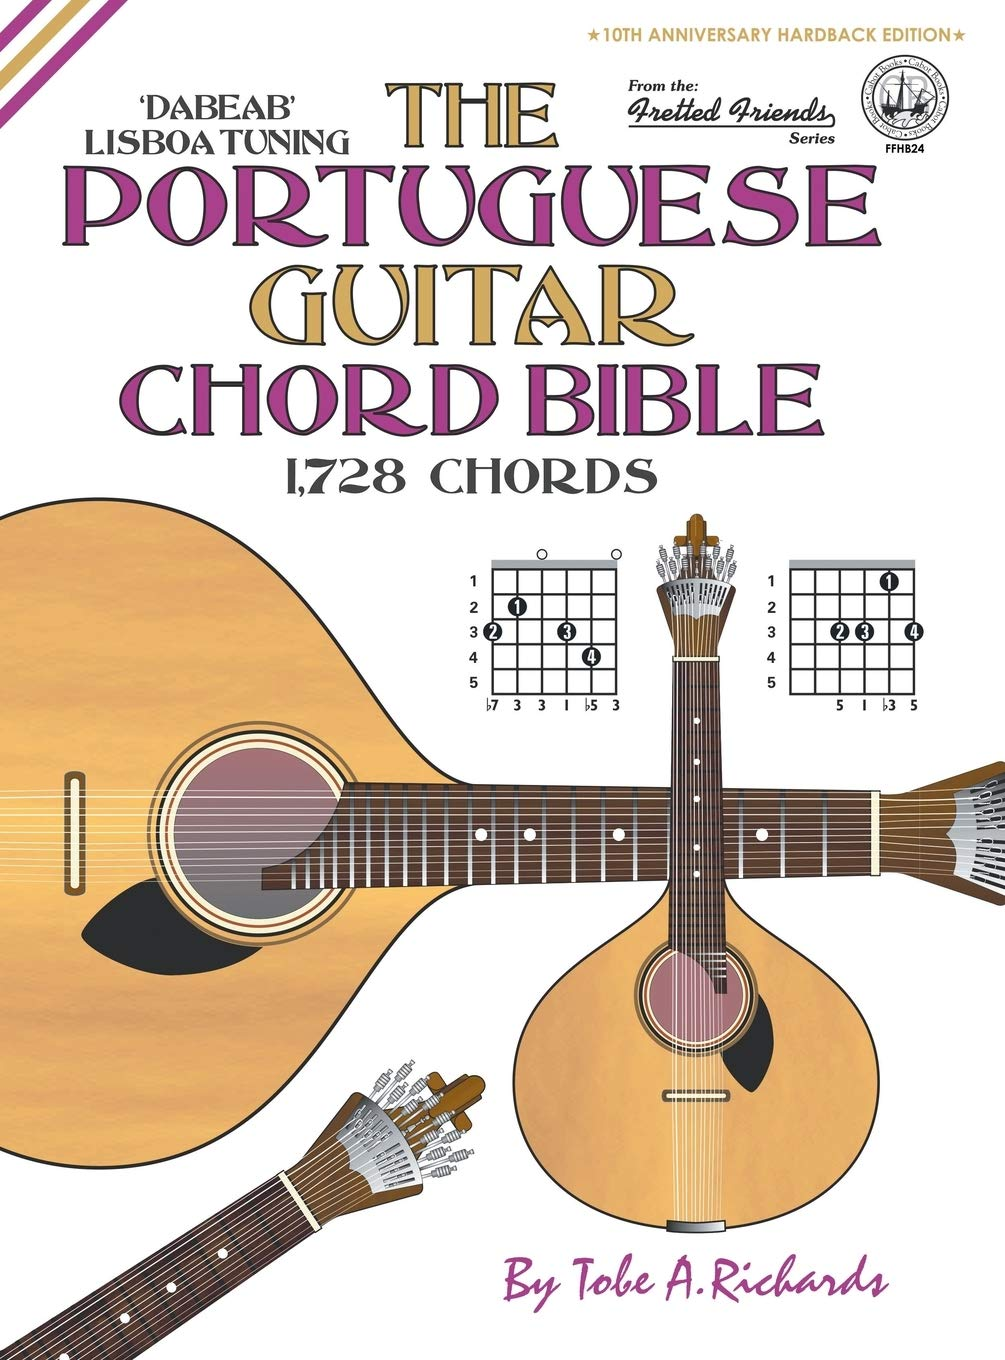 The Portuguese Guitar Chord Bible: Lisboa Tuning 1,728 Chords ...